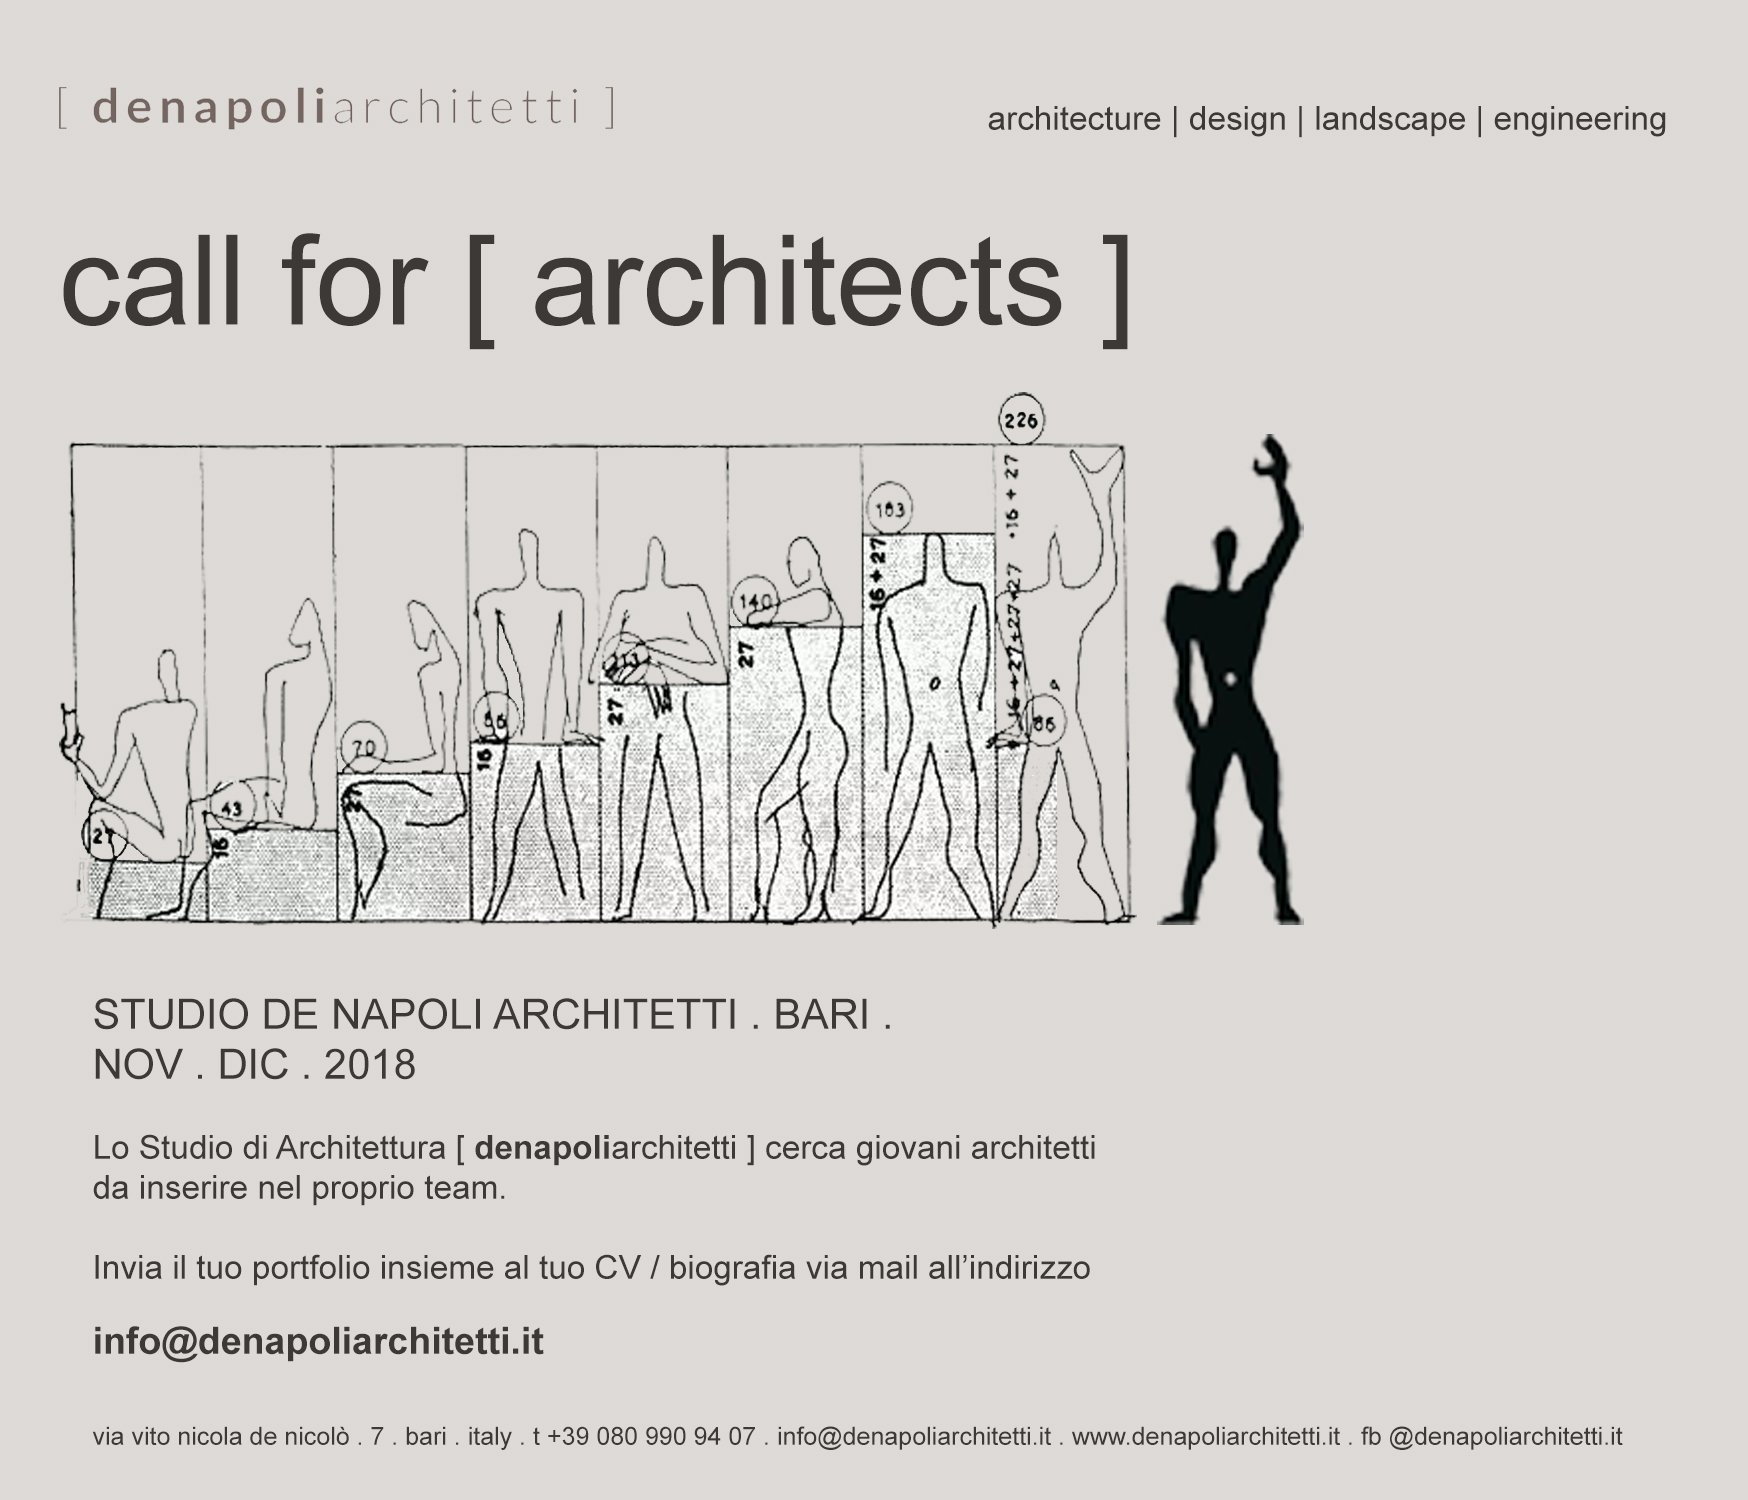 call for architects